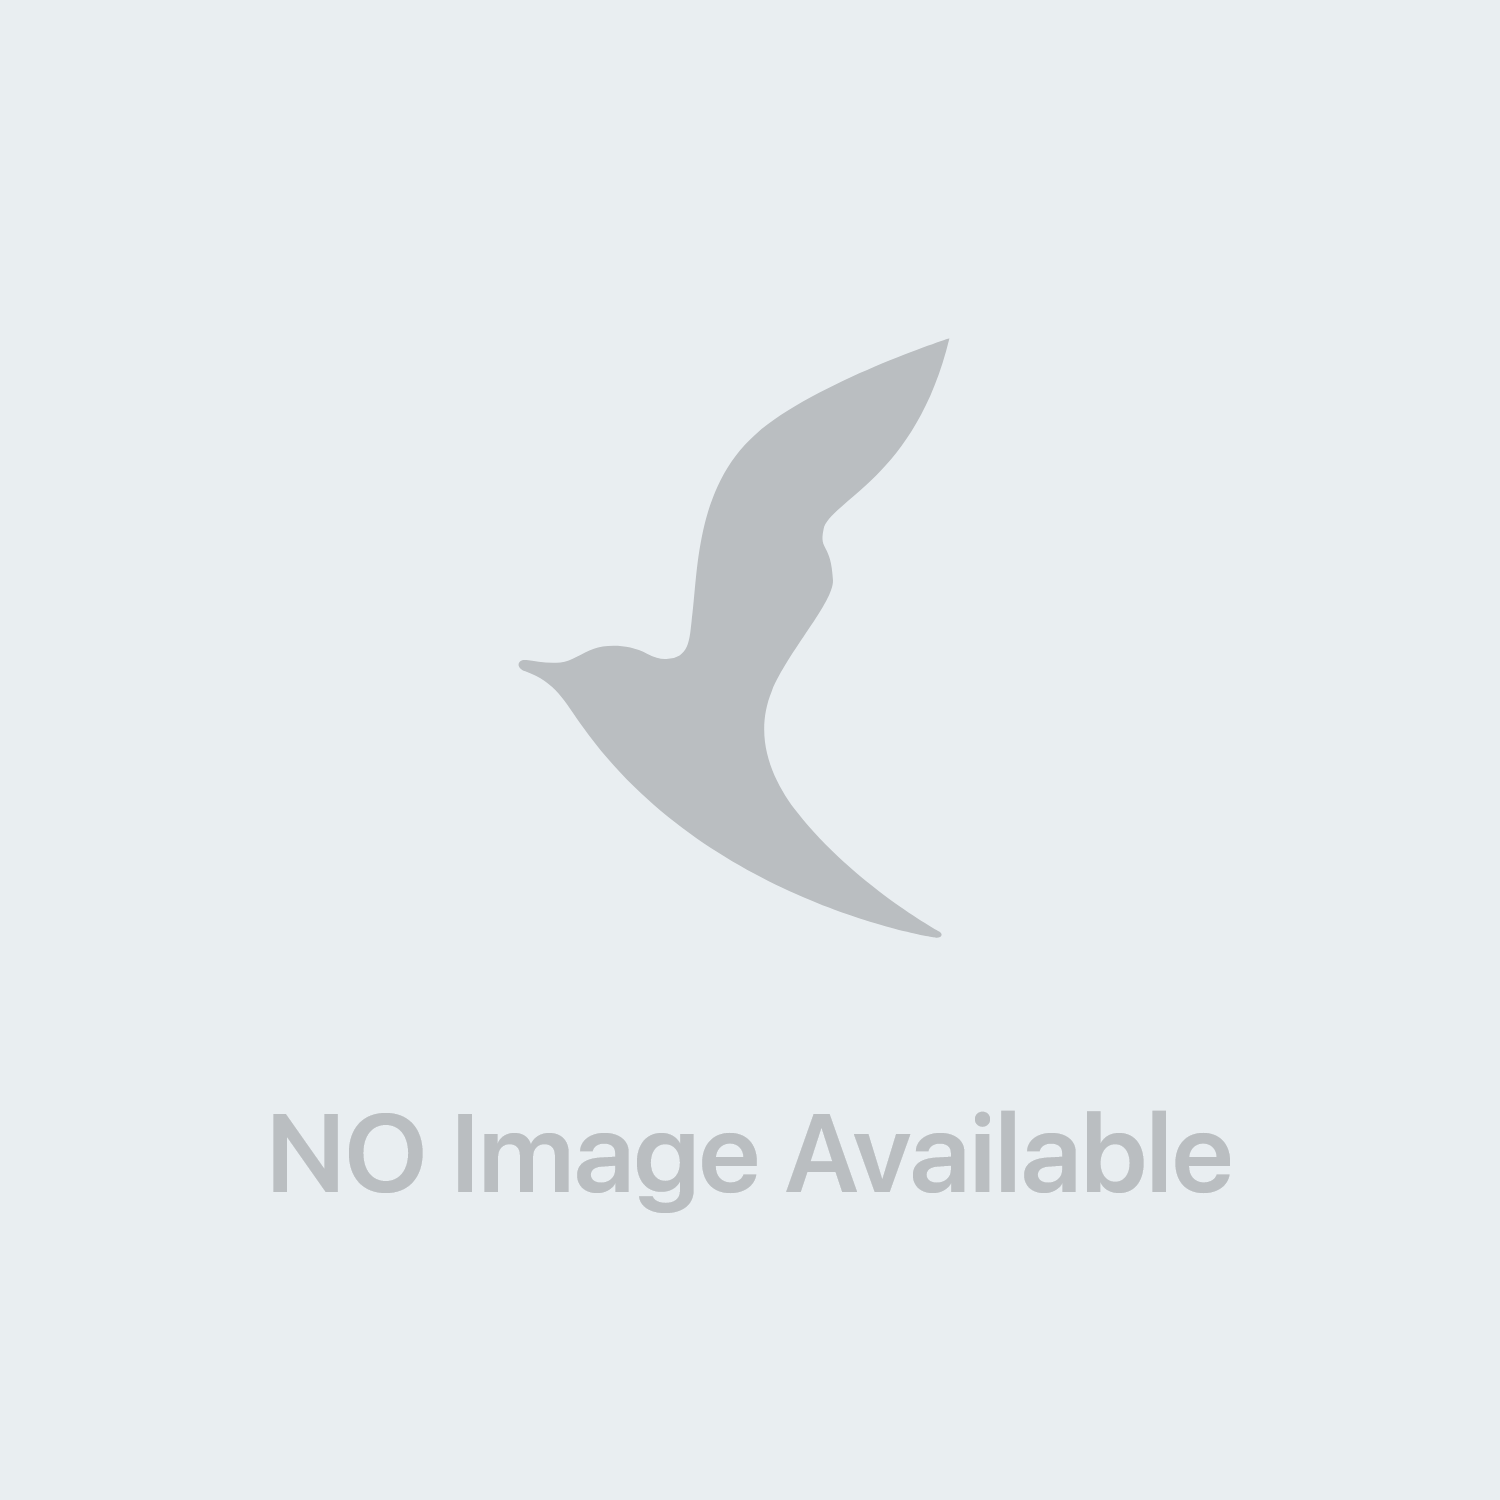 Buscopan Reflusso 14 compresse 20 mg